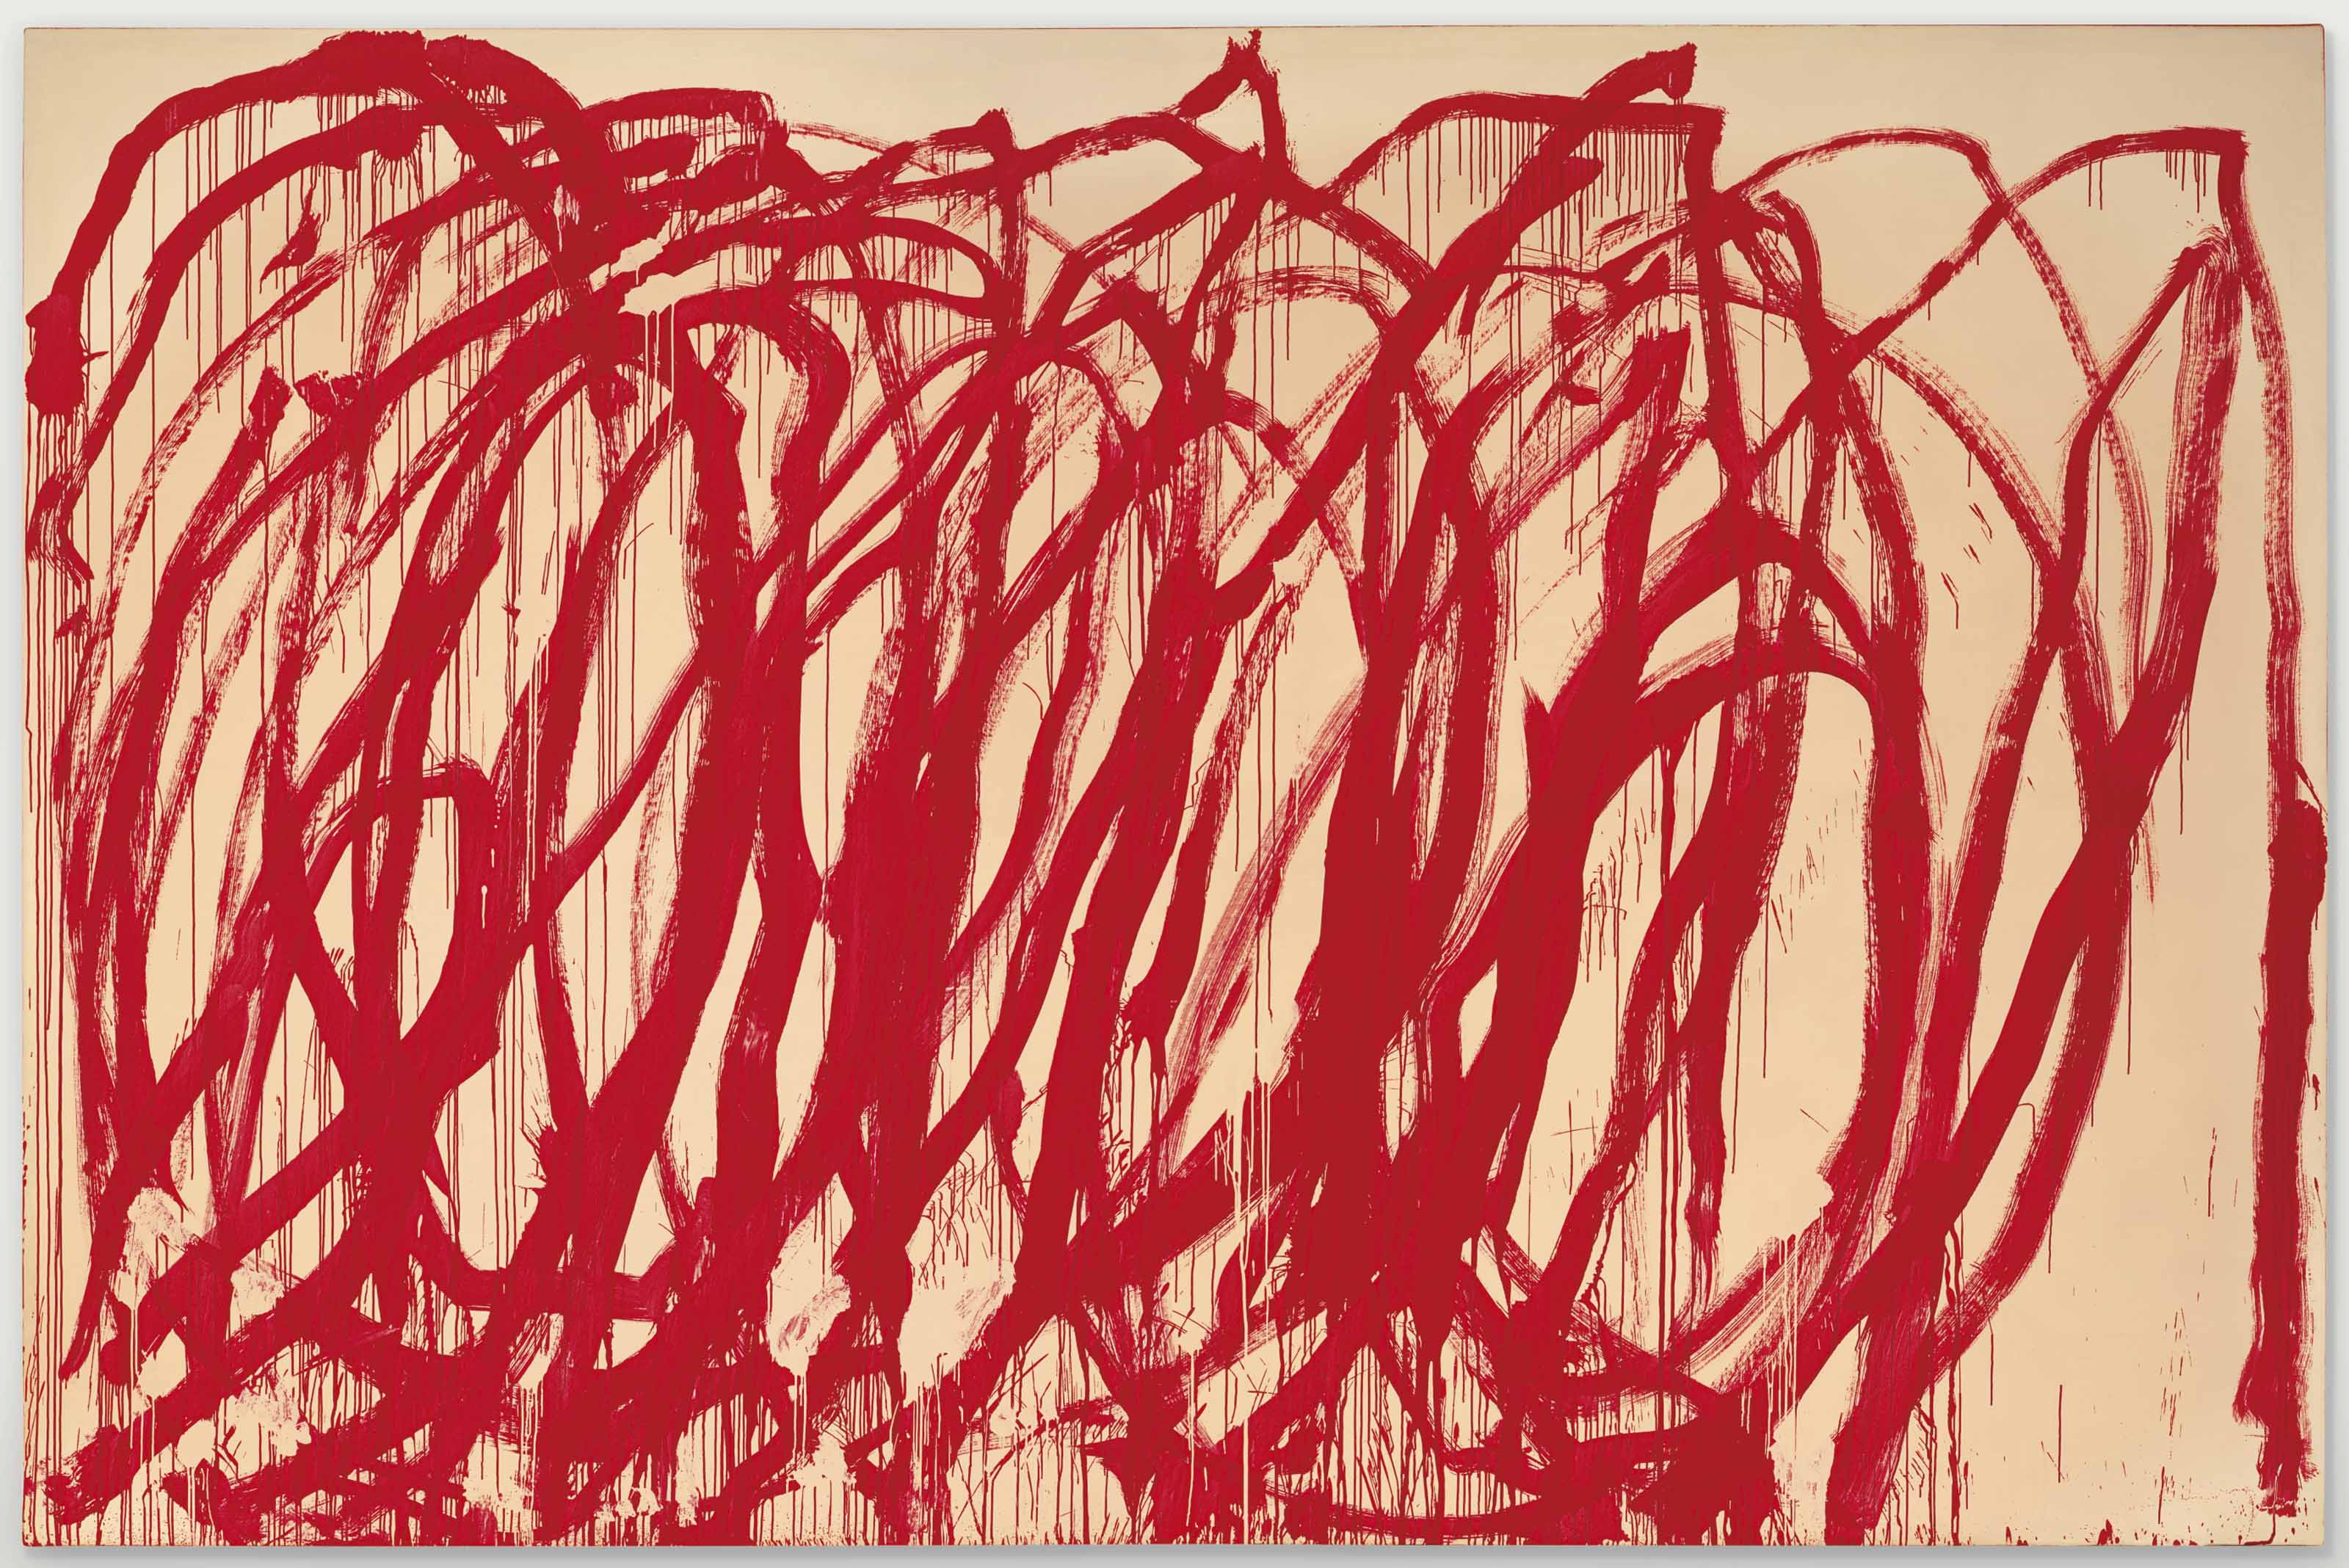 Cy Twombly (1928-2011), Untitled, 2005. 128 x 194½  in (325.1 x 494  cm). Sold for $46,437,500 in the Post-War & Contemporary Art Evening Sale on 15 November 2017  at Christie's in New York